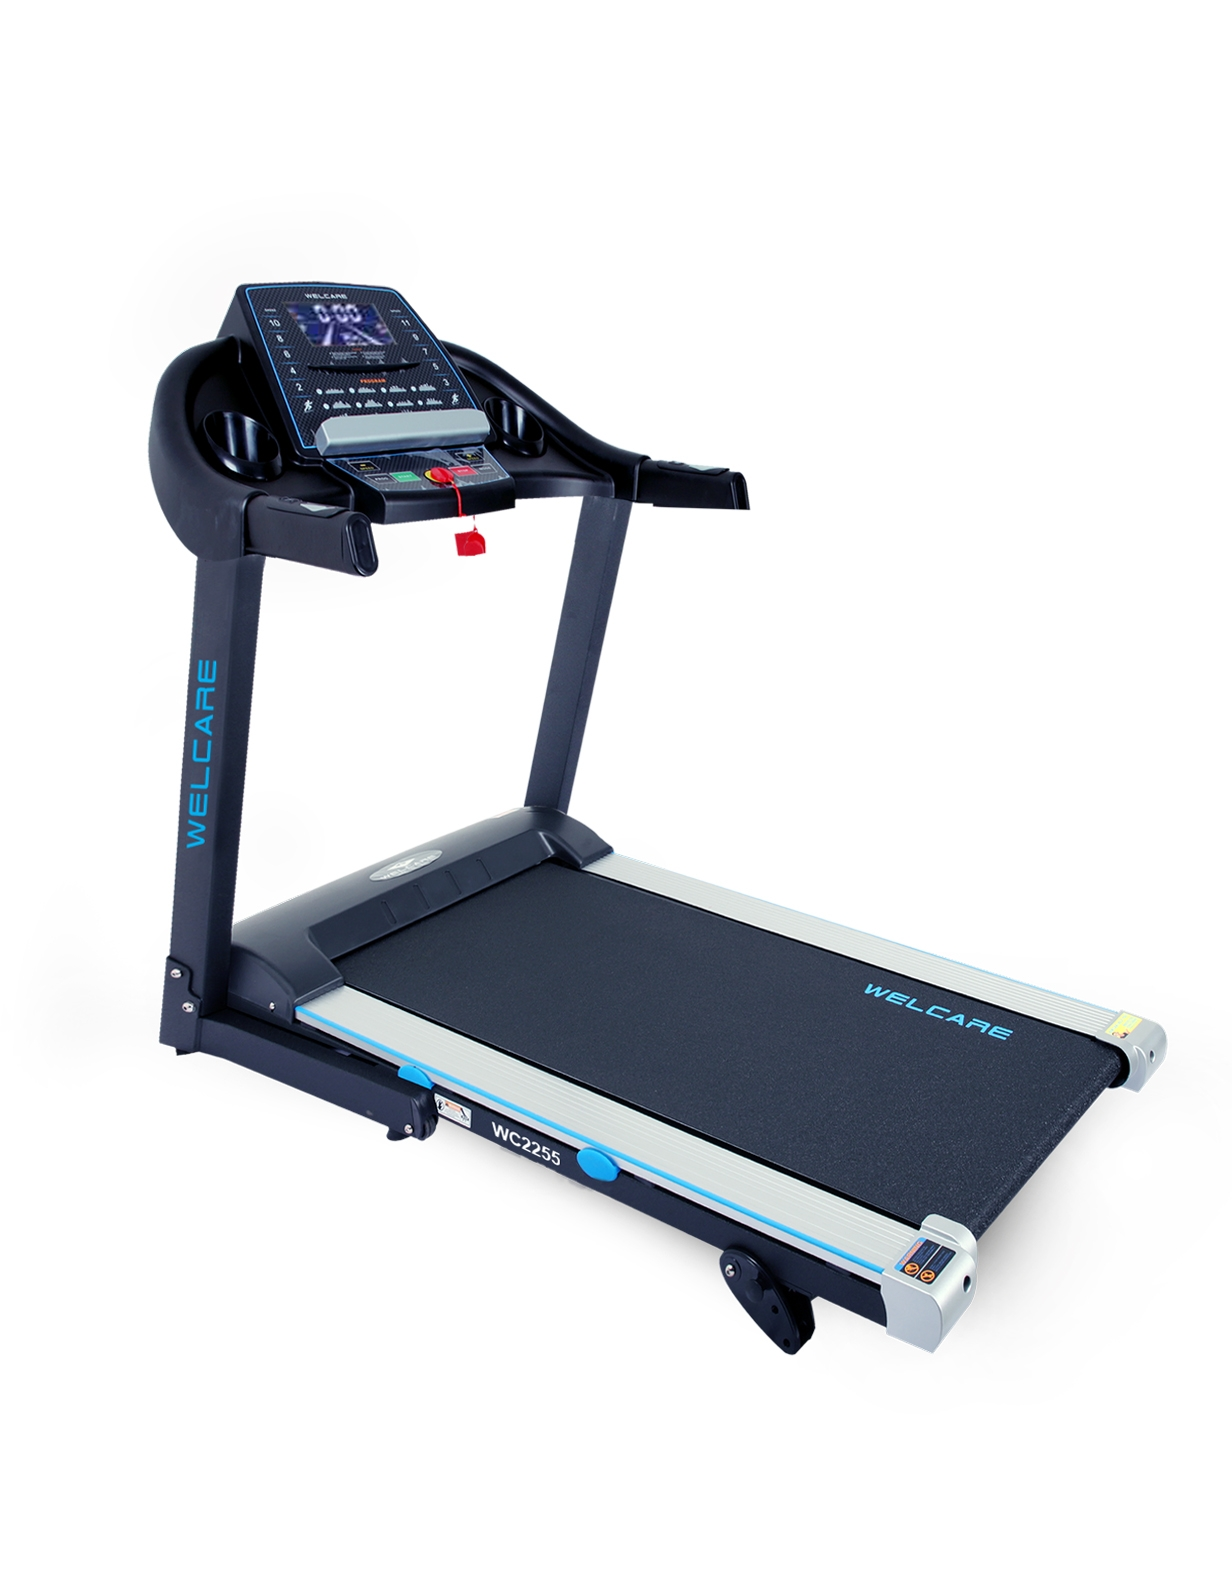 WC 2255 MOTORIZED TREADMILL